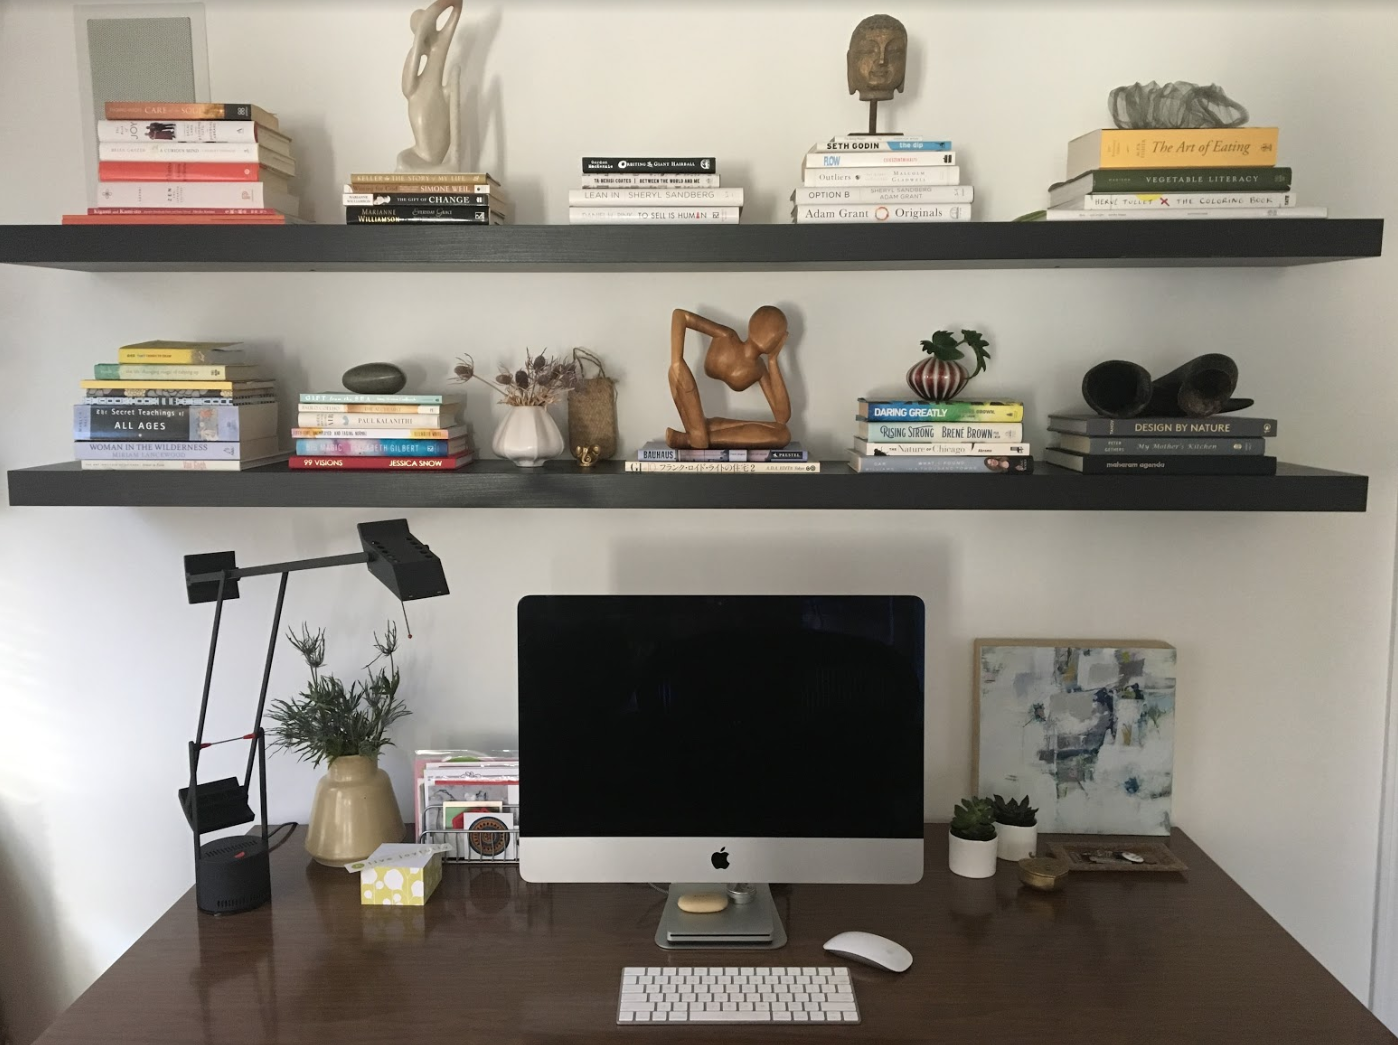 A private workspace that is just hers! Inspired books fuel the soul and calms the mind.